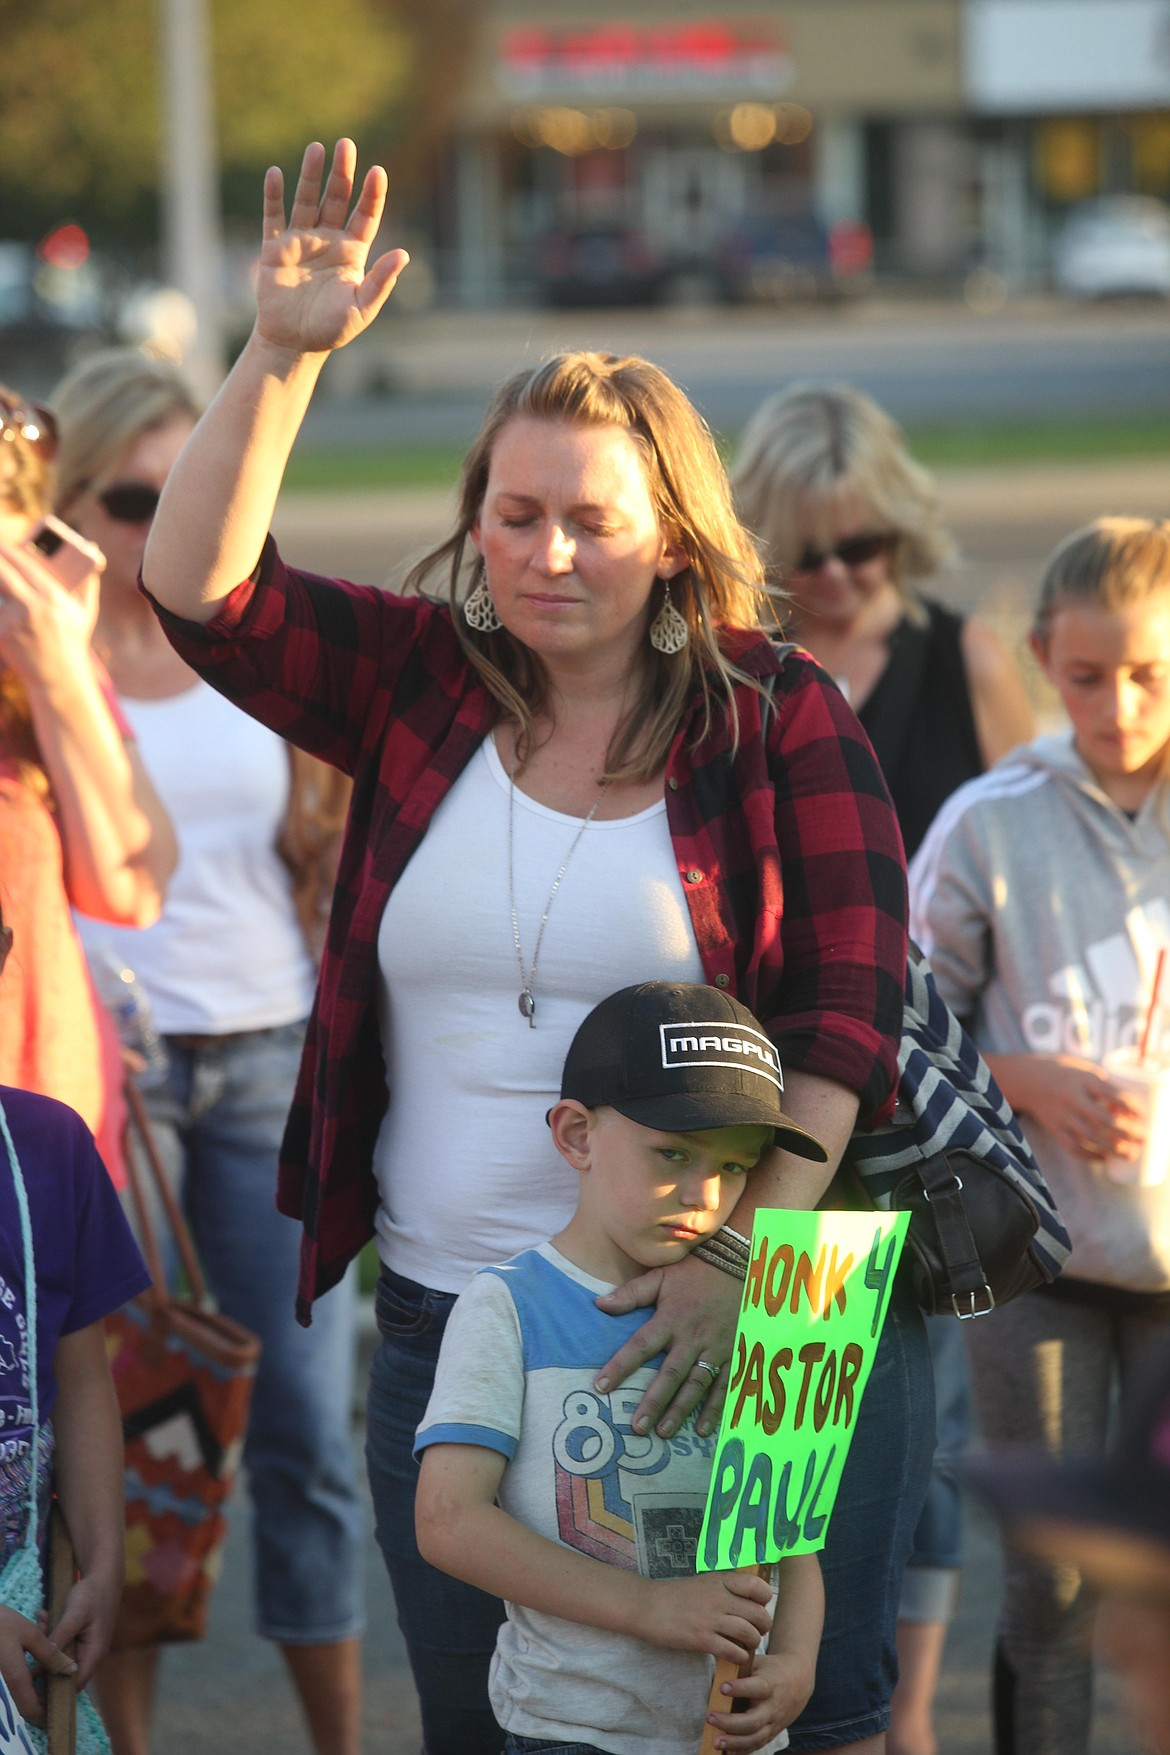 Kari Schueler and son Atticus participate in a prayer vigil for Pastor Paul Van Noy outside Kootenai Health Wednesday night.